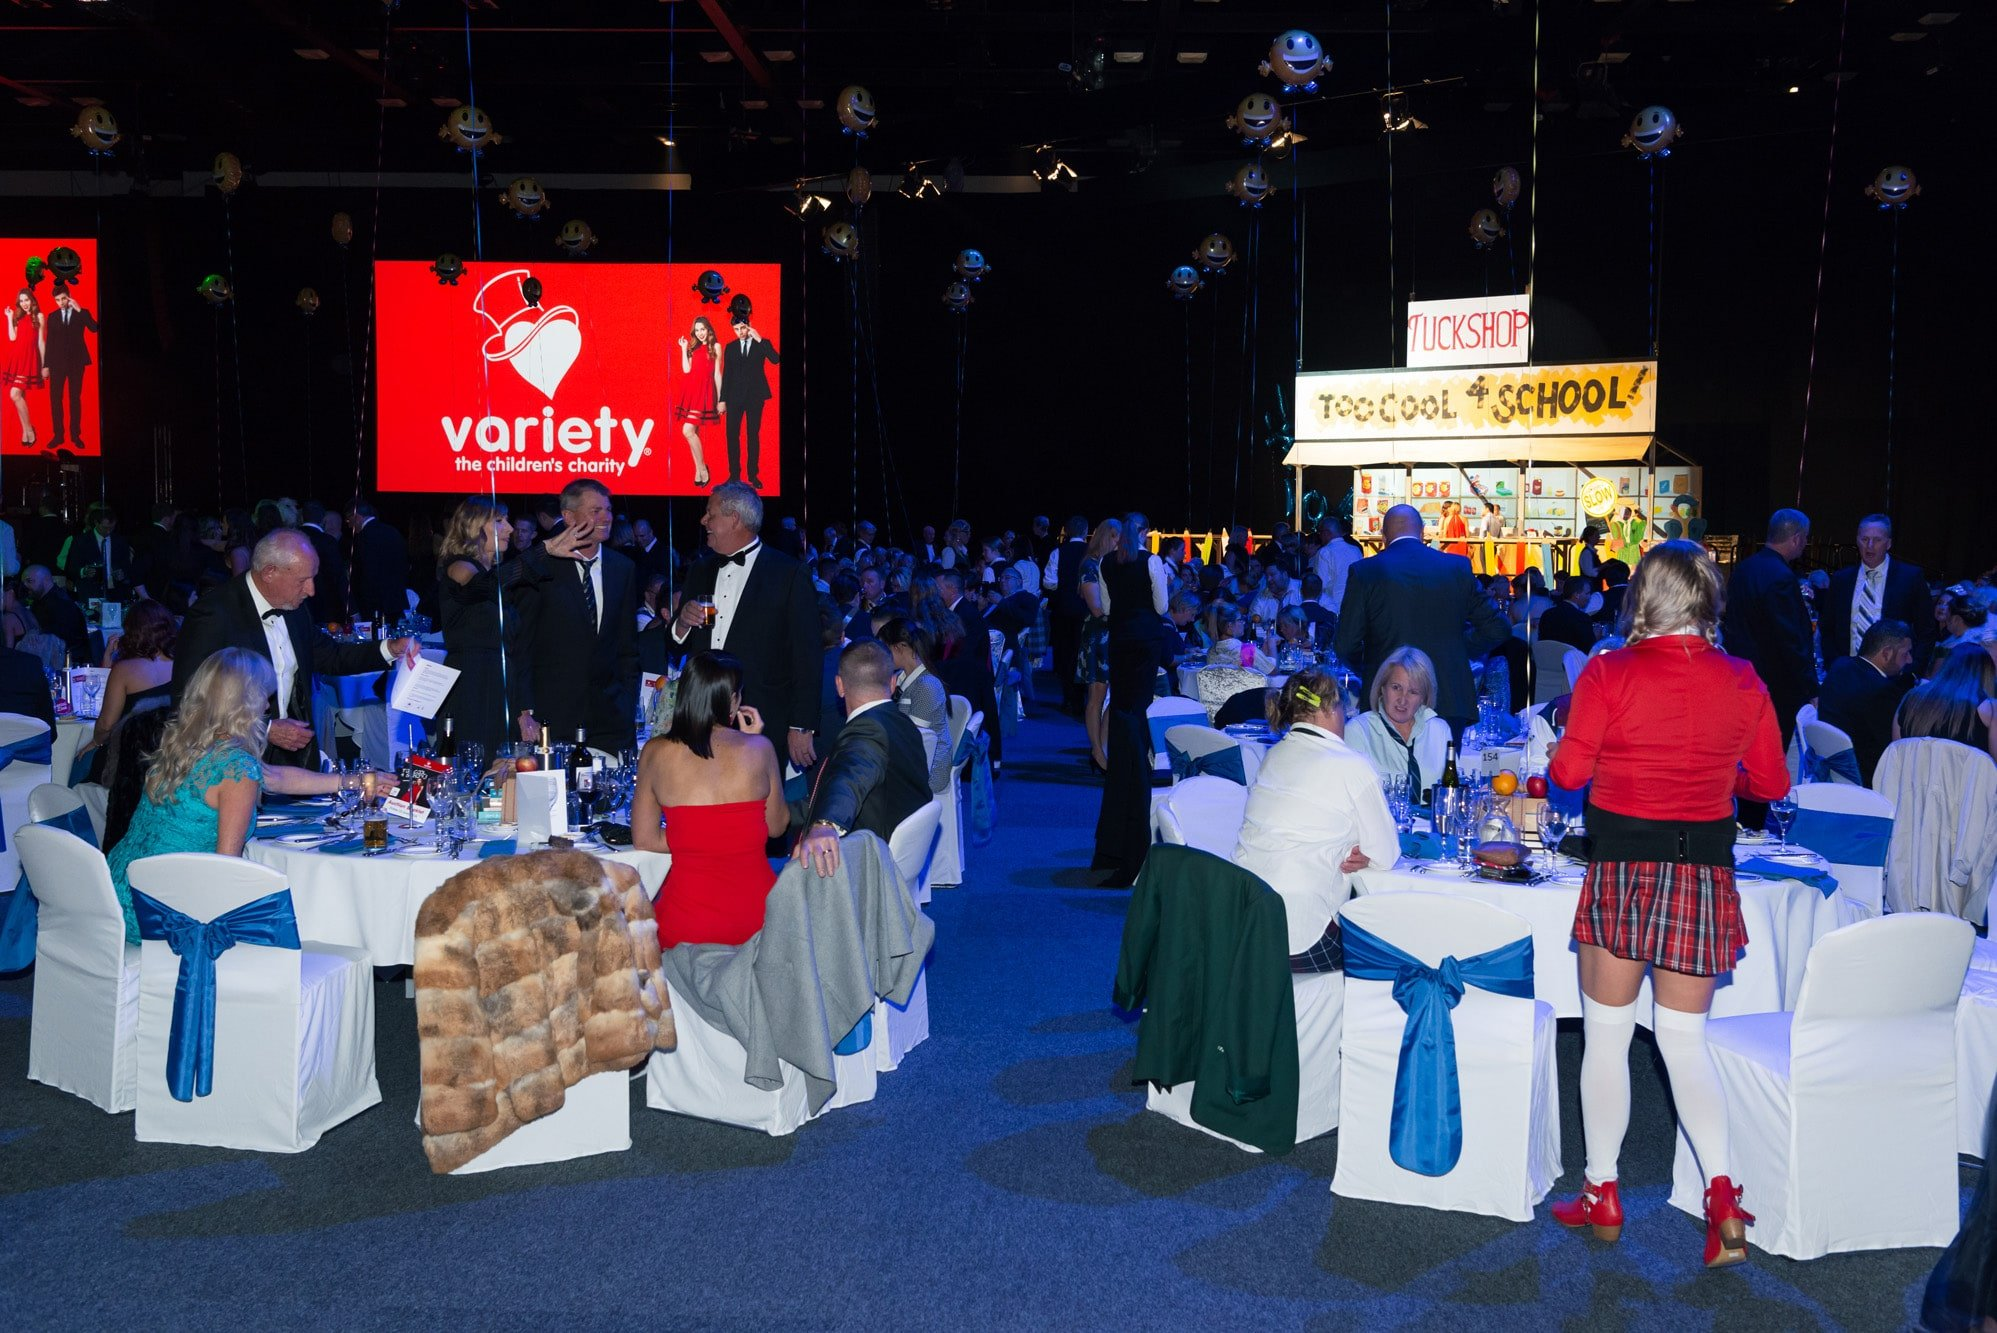 Check out the photo gallery from this year's #VarietyBall